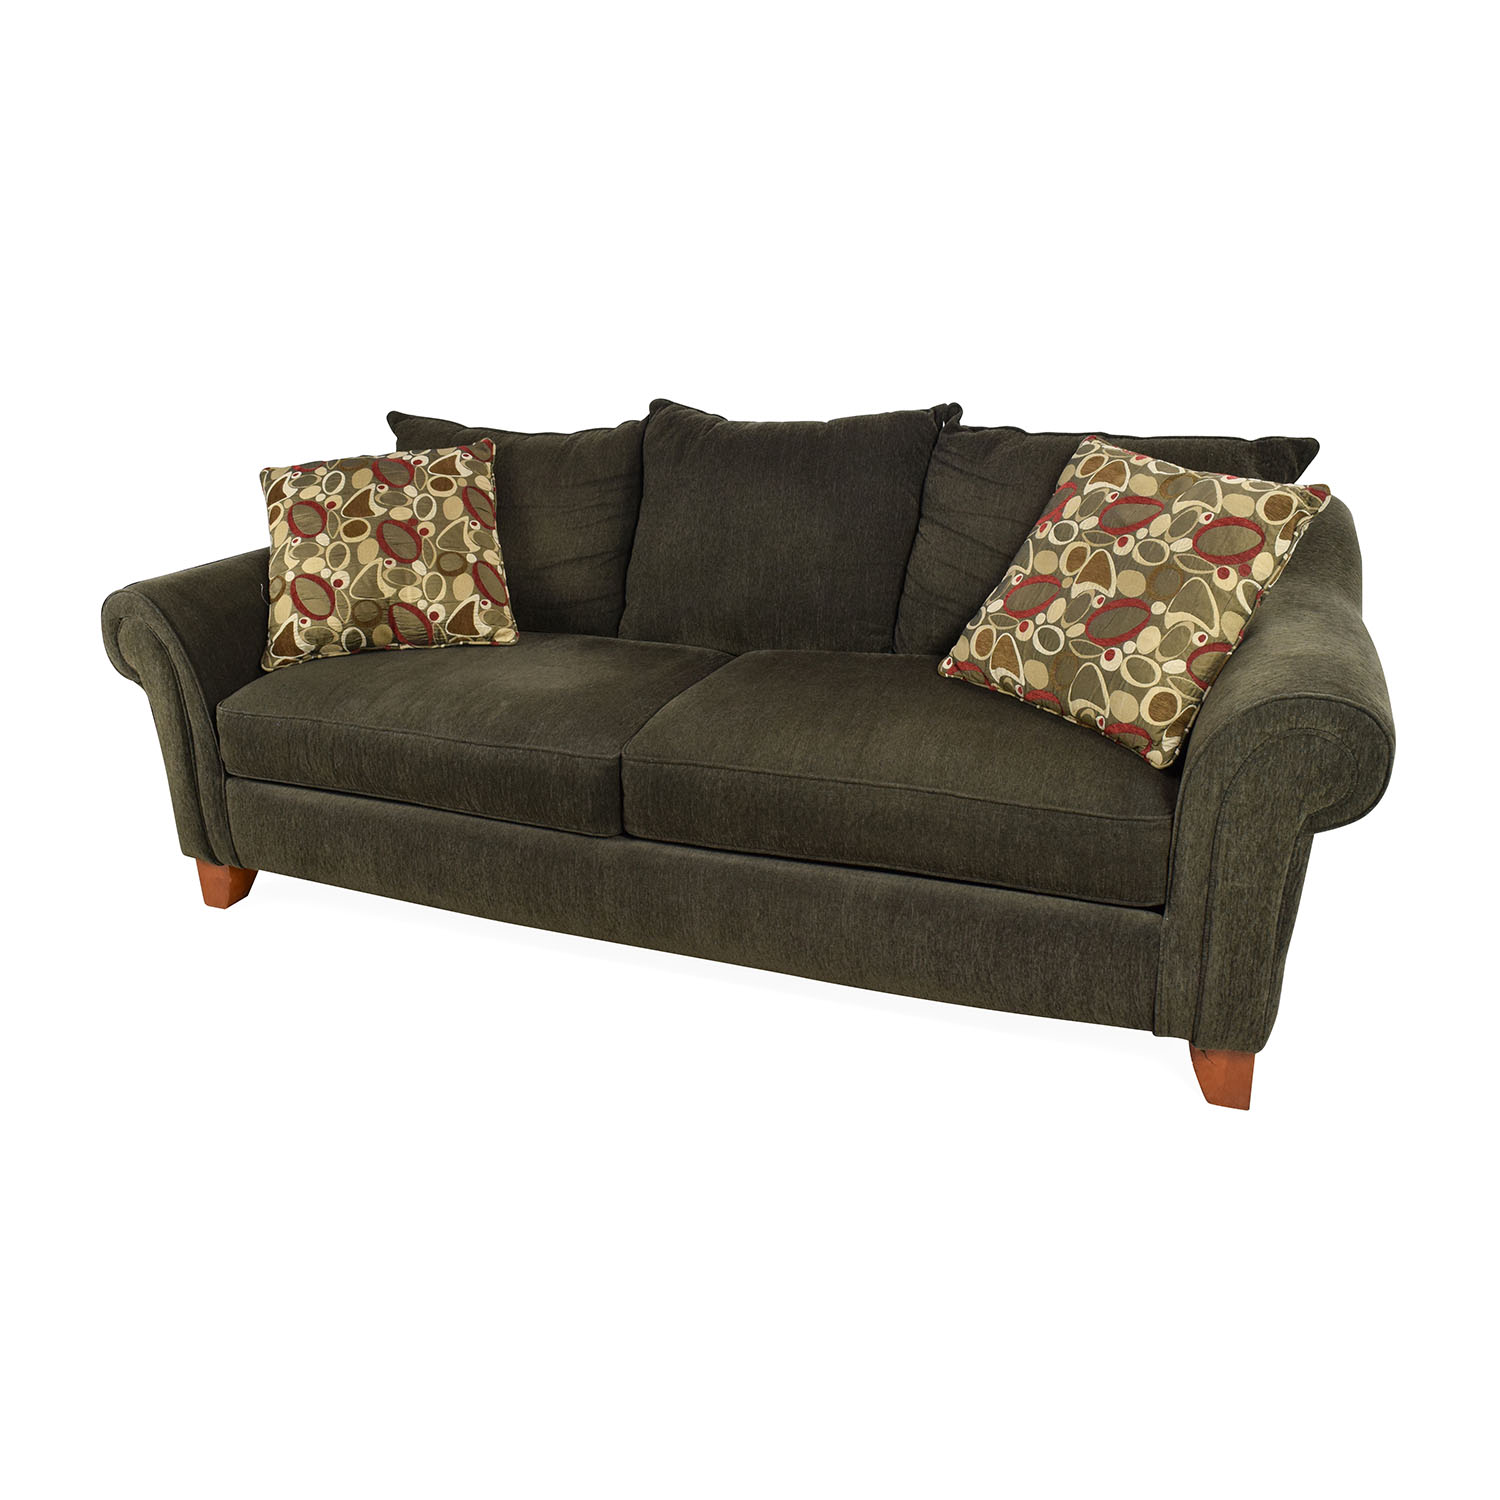 Delightful ... Raymour And Flanigan Raymour U0026 Flanigan Molly Chenille Sofa ...